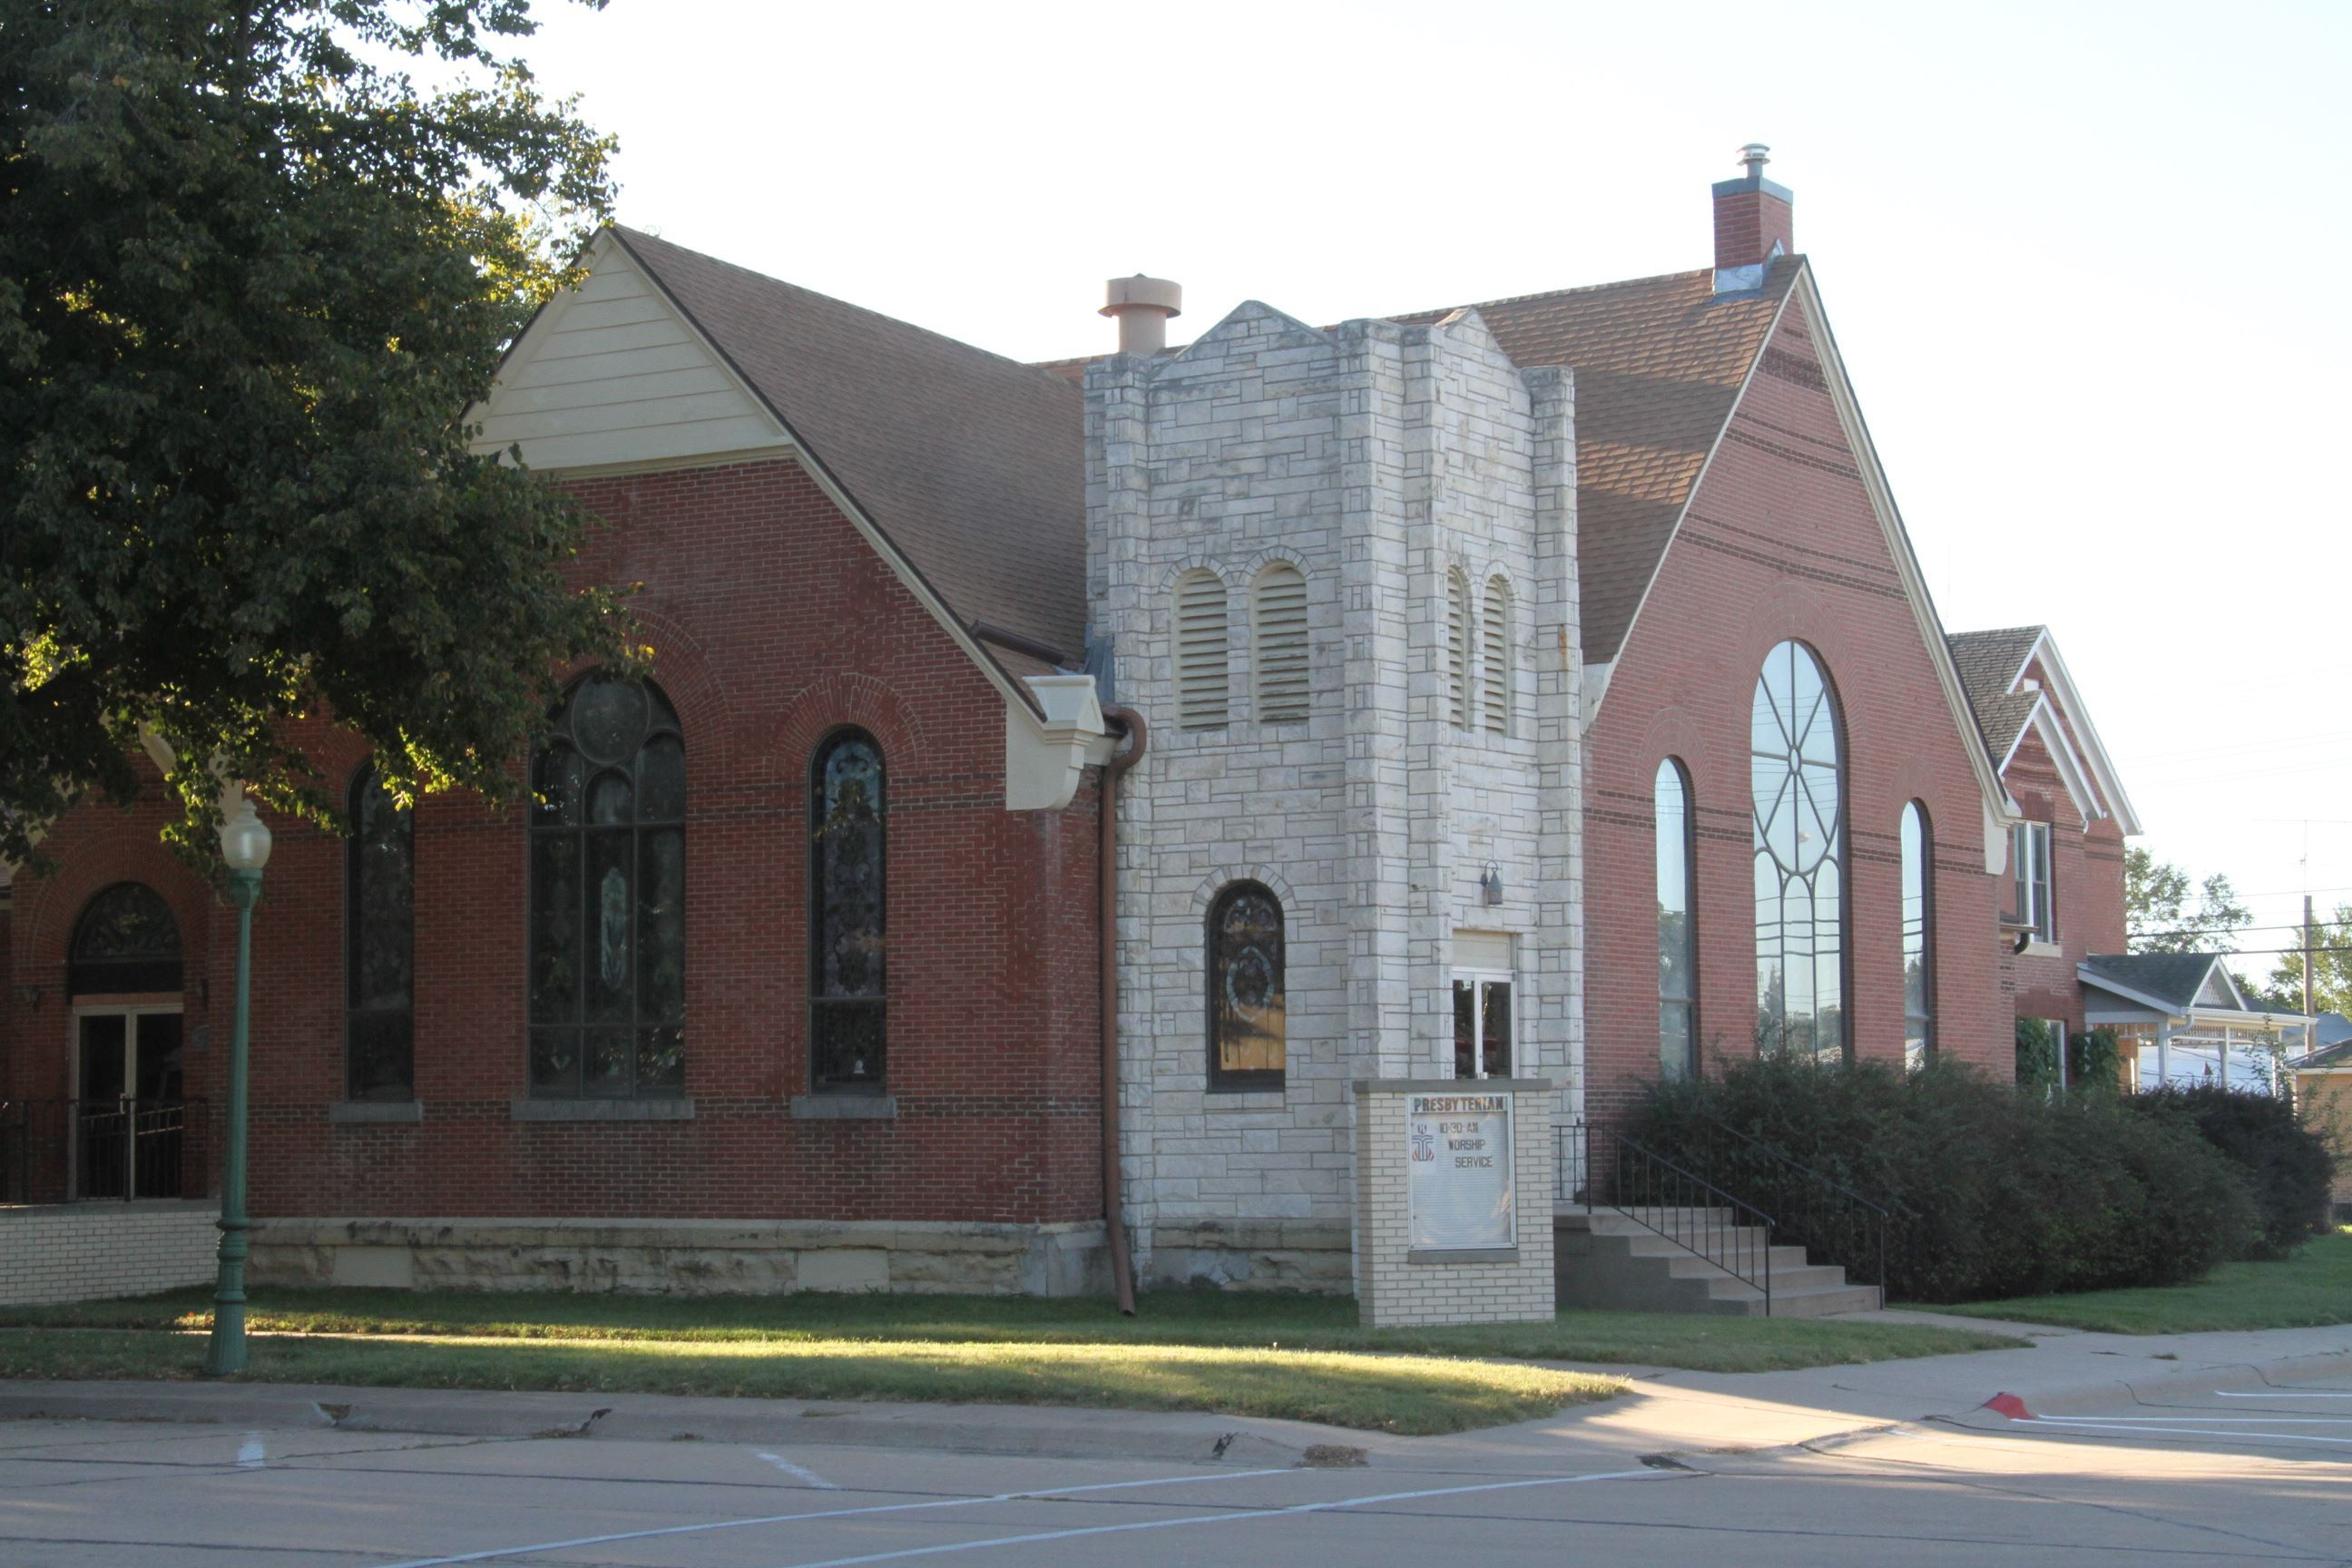 Presbyterian Church building on the corner